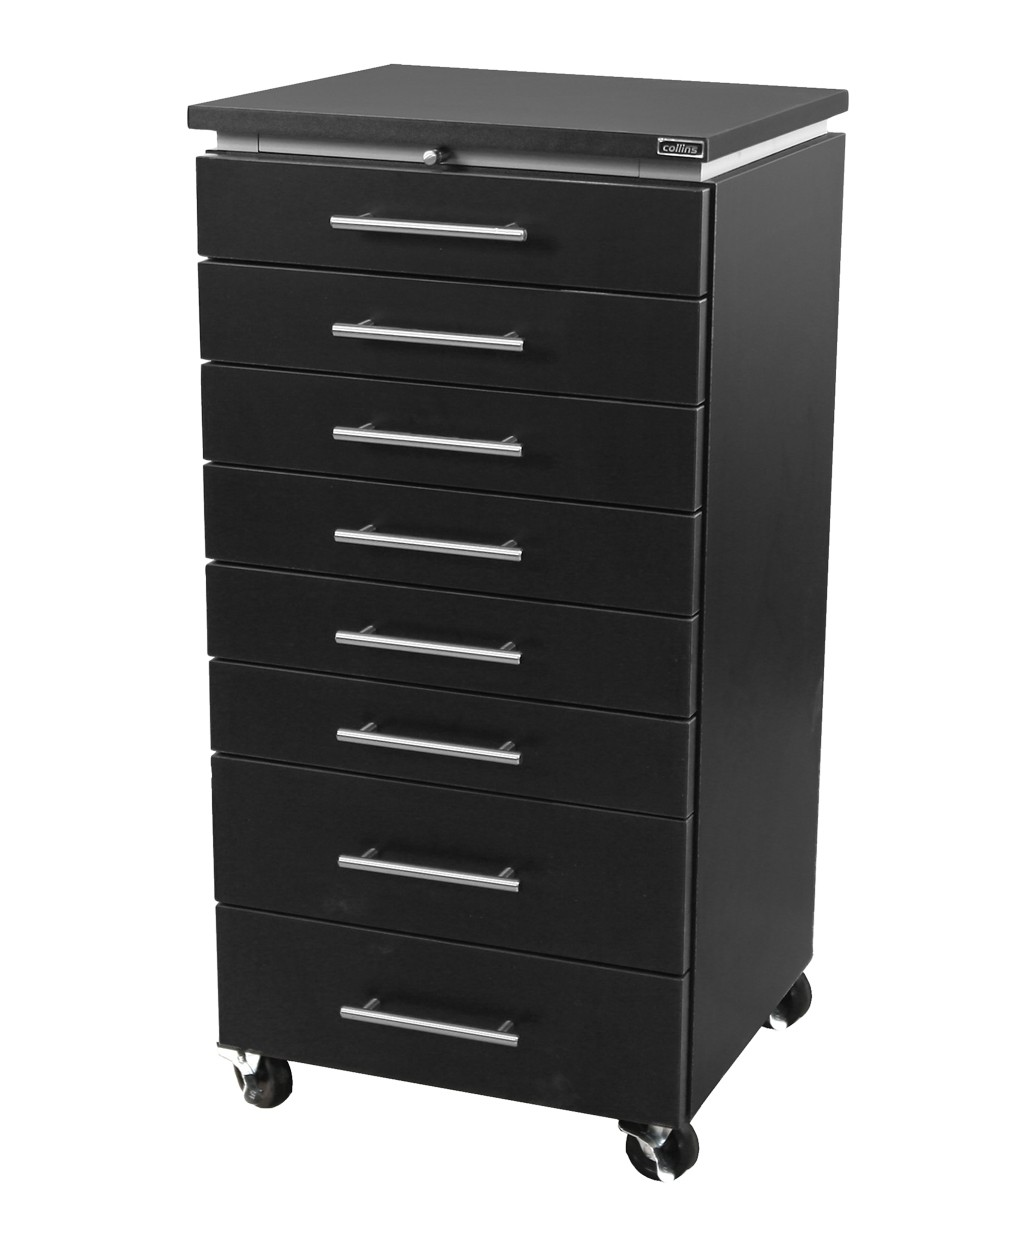 Collins 4434-18 Neo Portable Hair & Make-up Station